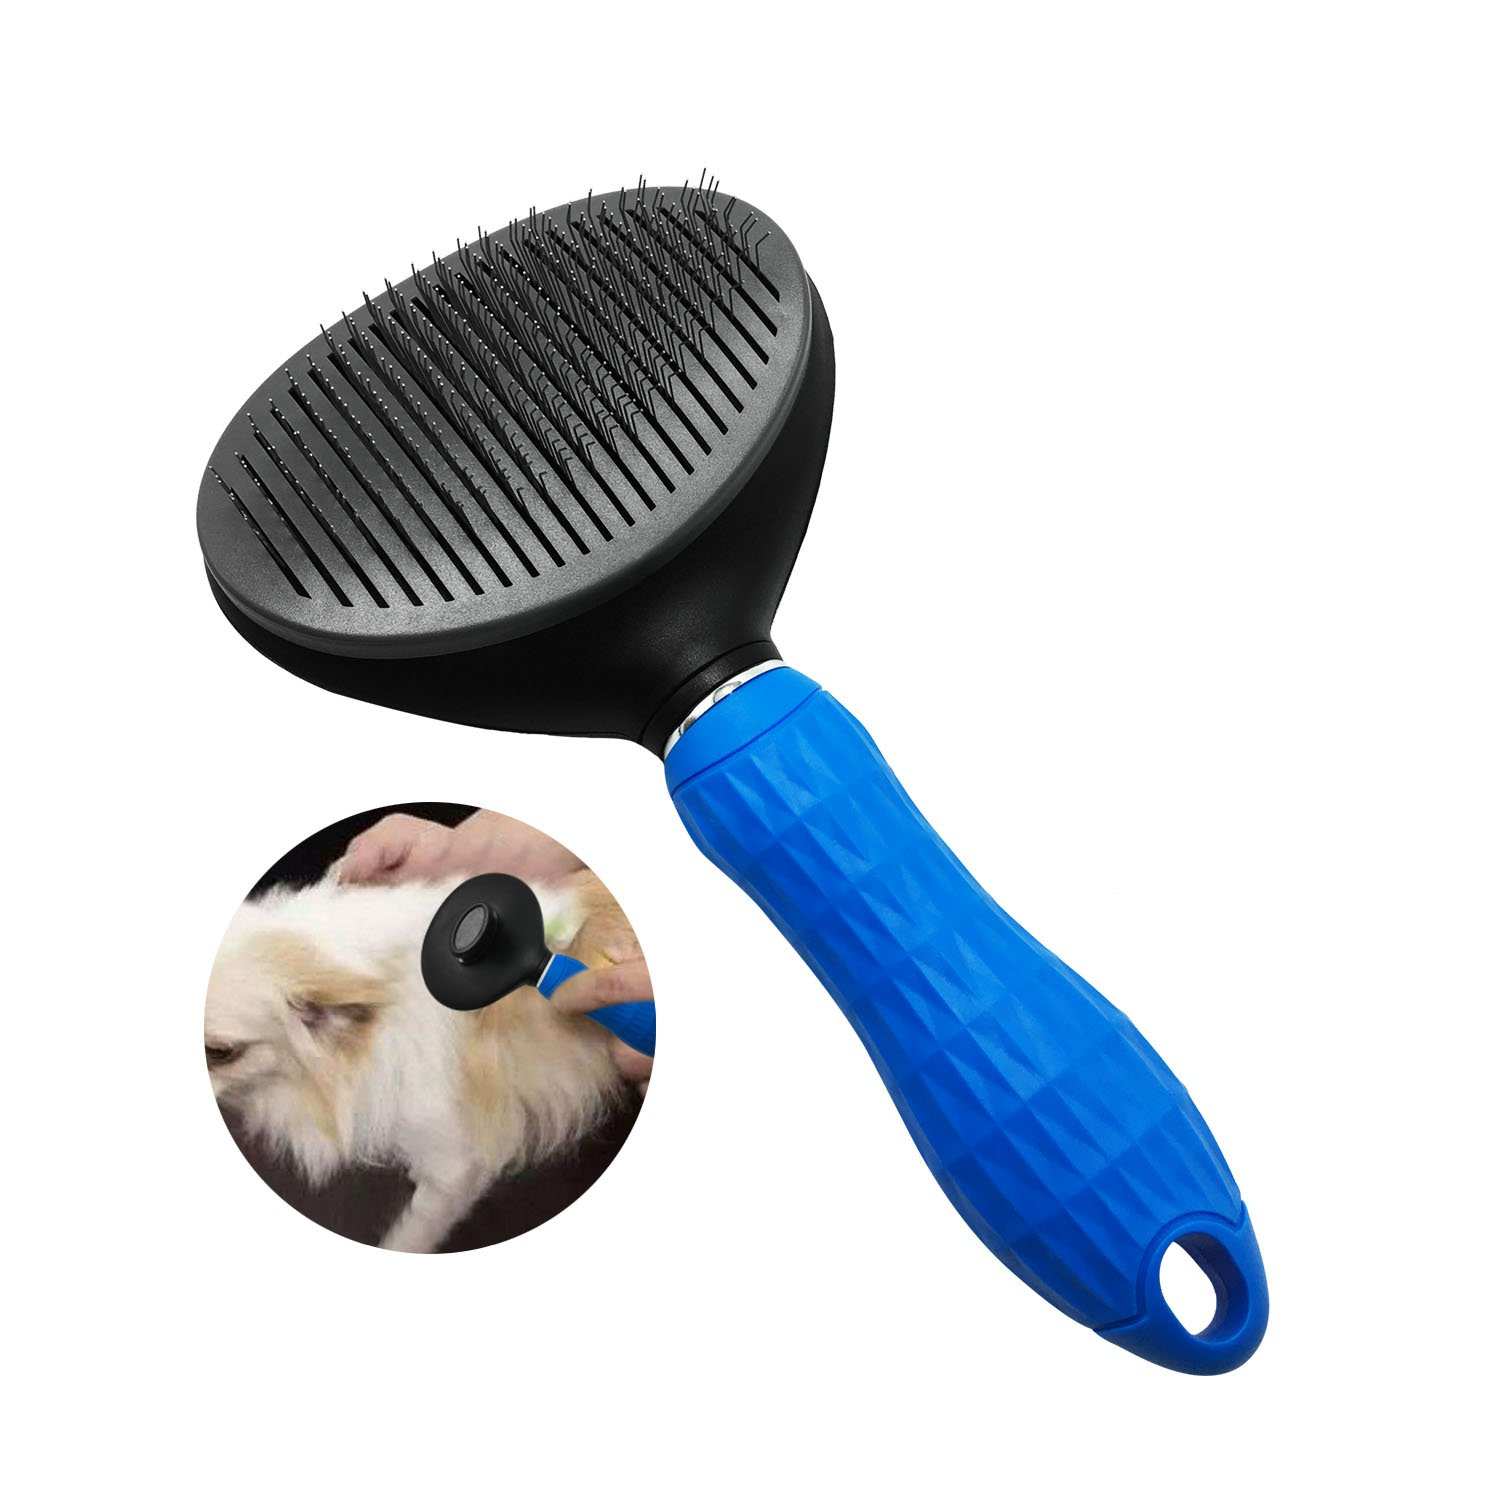 FurPro pet self-cleaning slicker brush for dogs,easy to remove loose hair, large